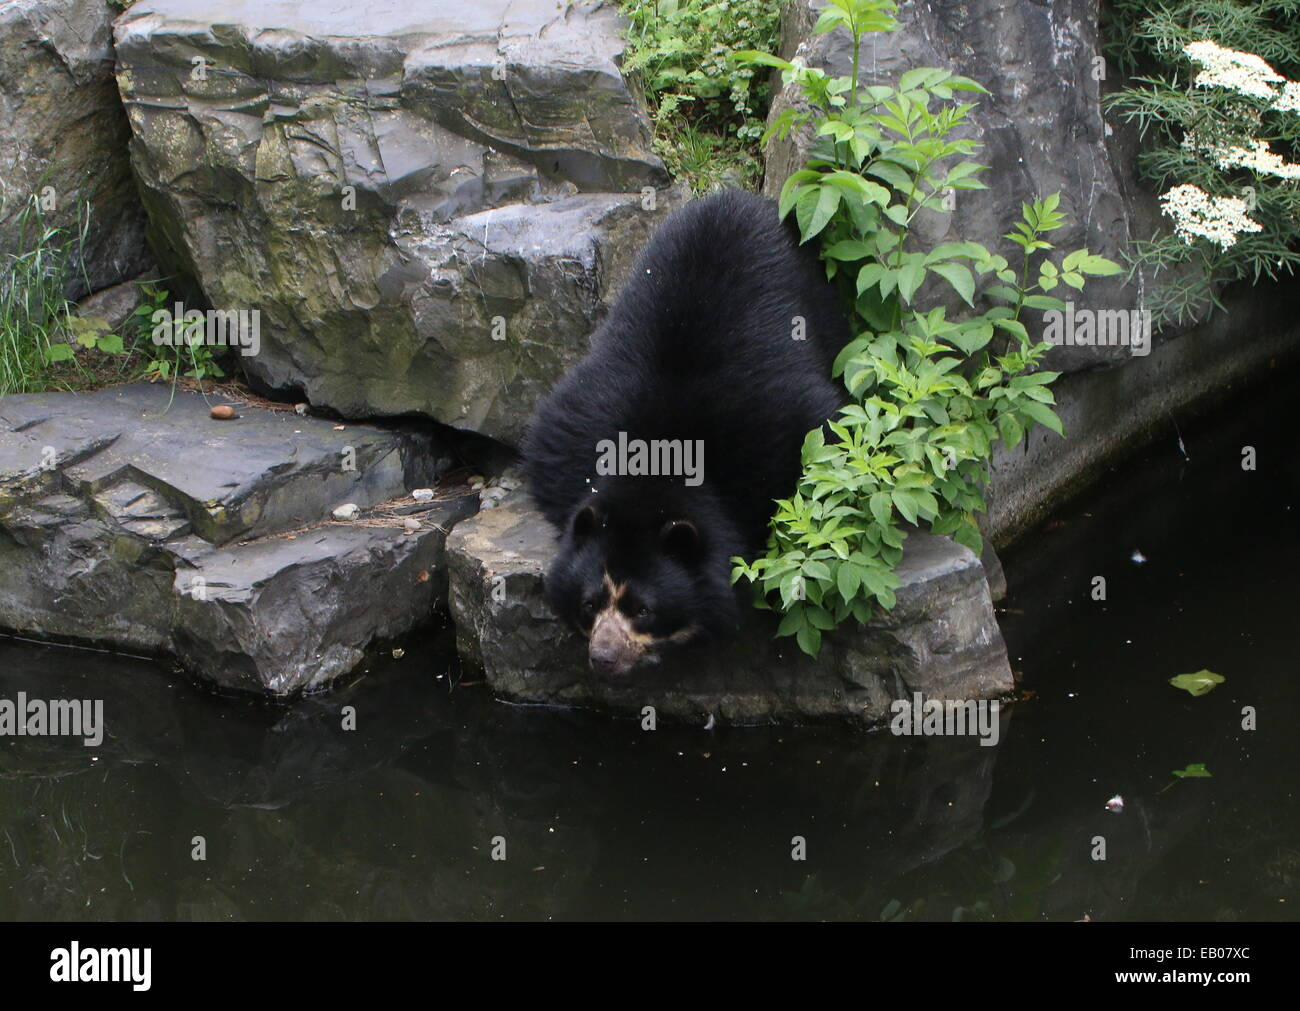 Spectacled or  Andean bear (Tremarctos ornatus) near the water's edge Stock Photo